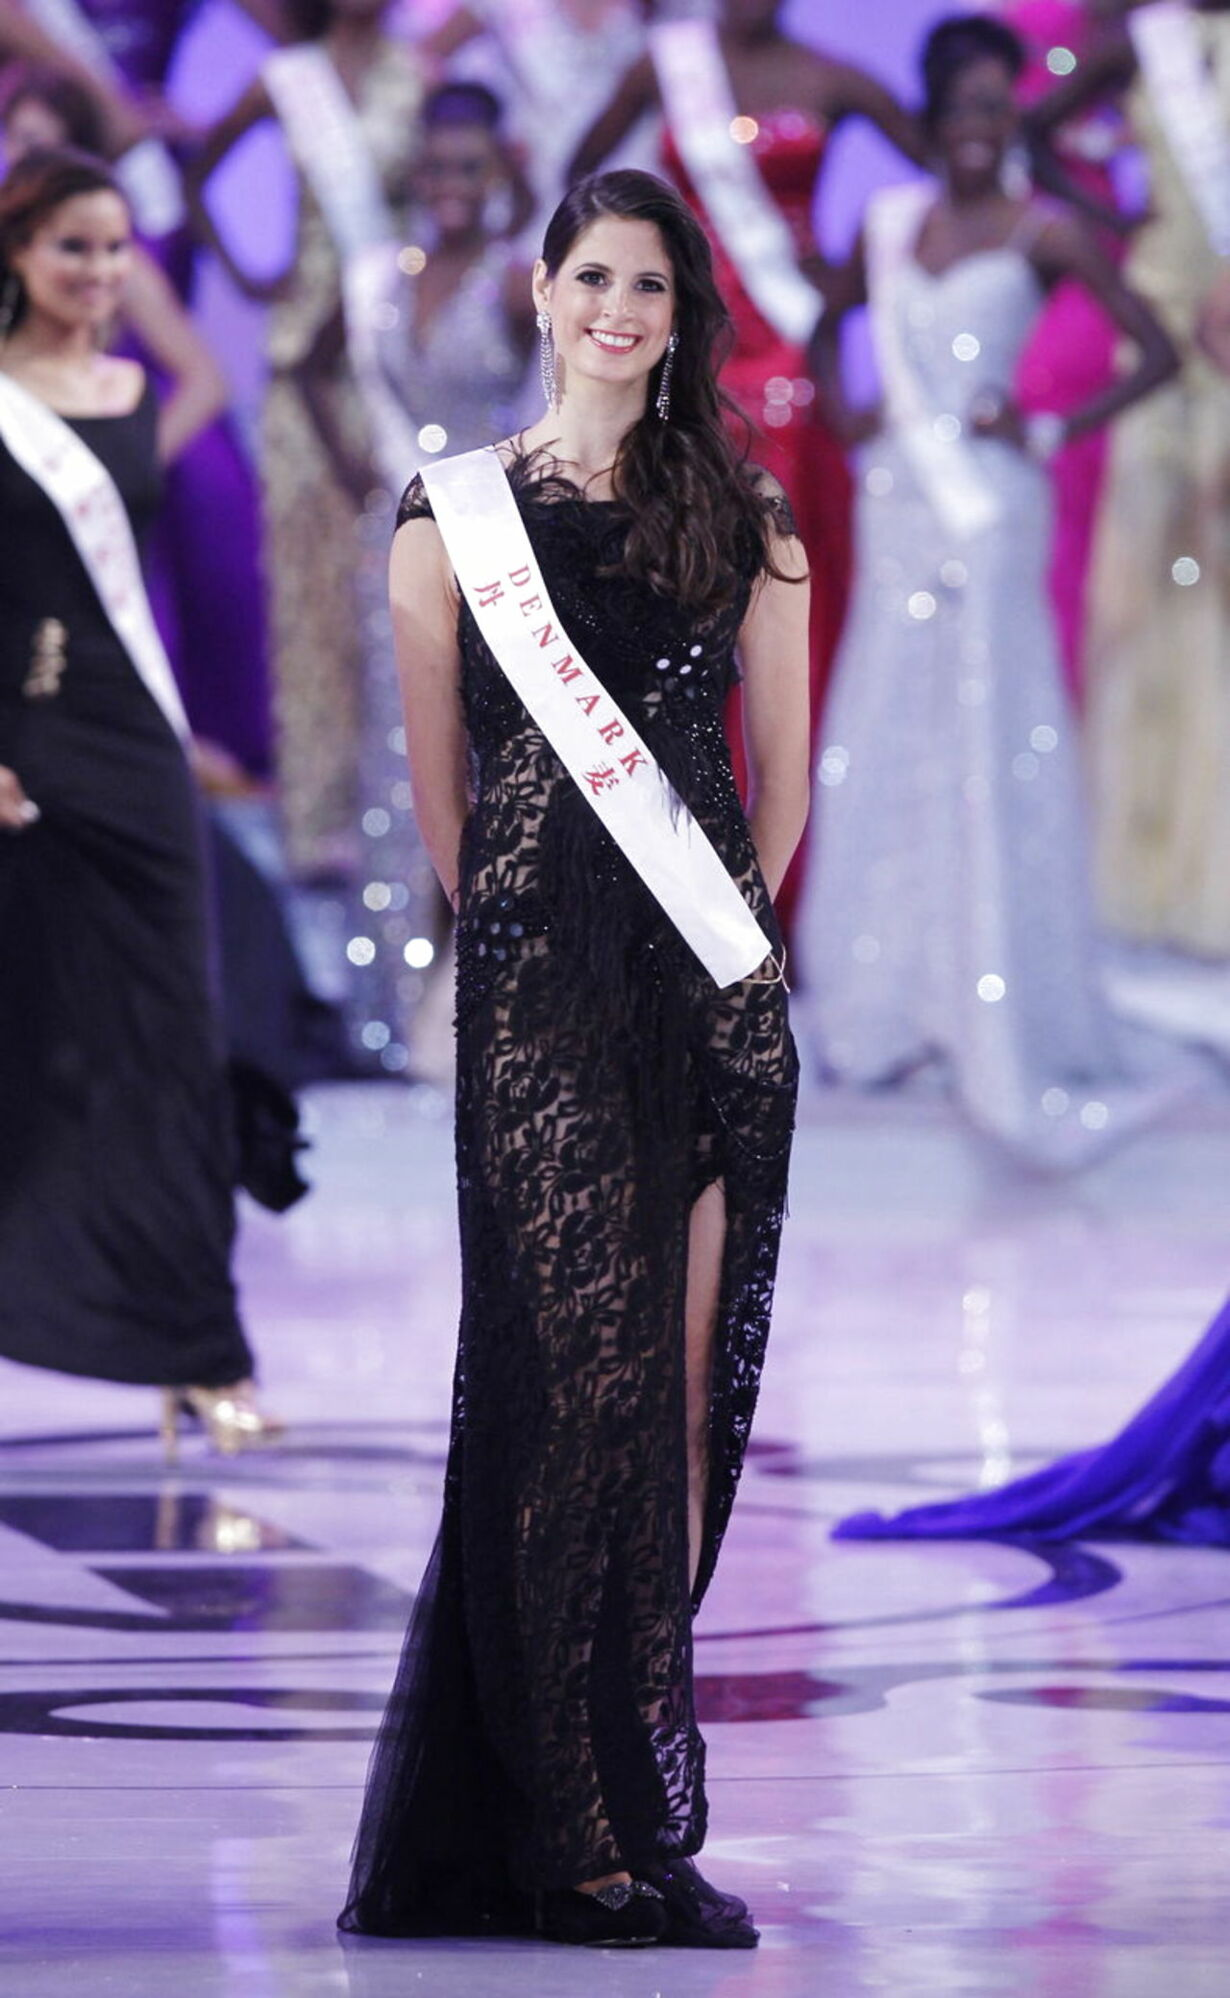 CHINA MISS WORLD 2012